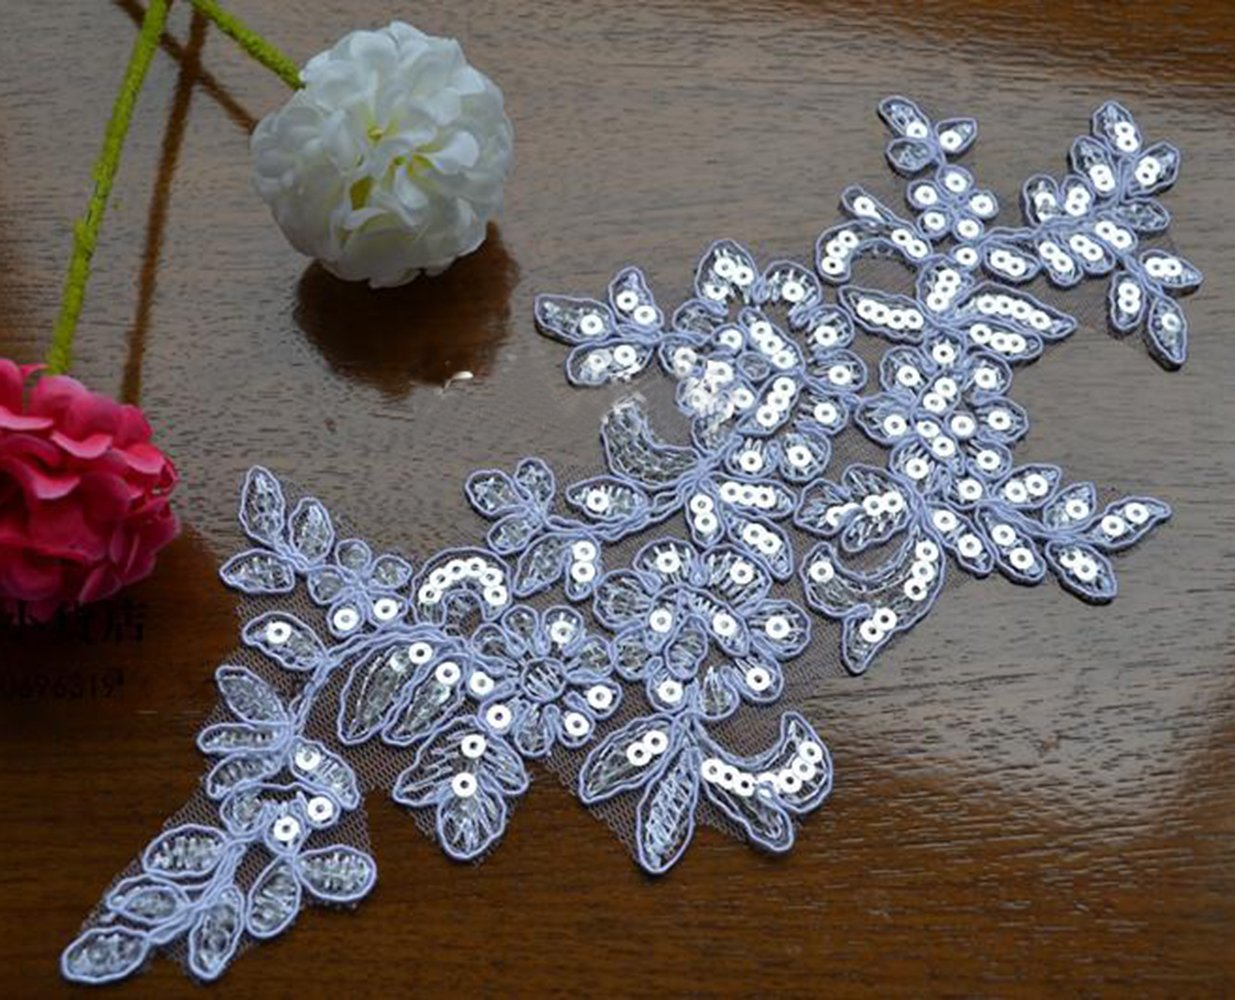 1 Pair Sequin Embroidered Lace Appliques Embroidery Patches For Dress Sewing Shoes Decor Supply L 10-1//2 W 4 Wide black